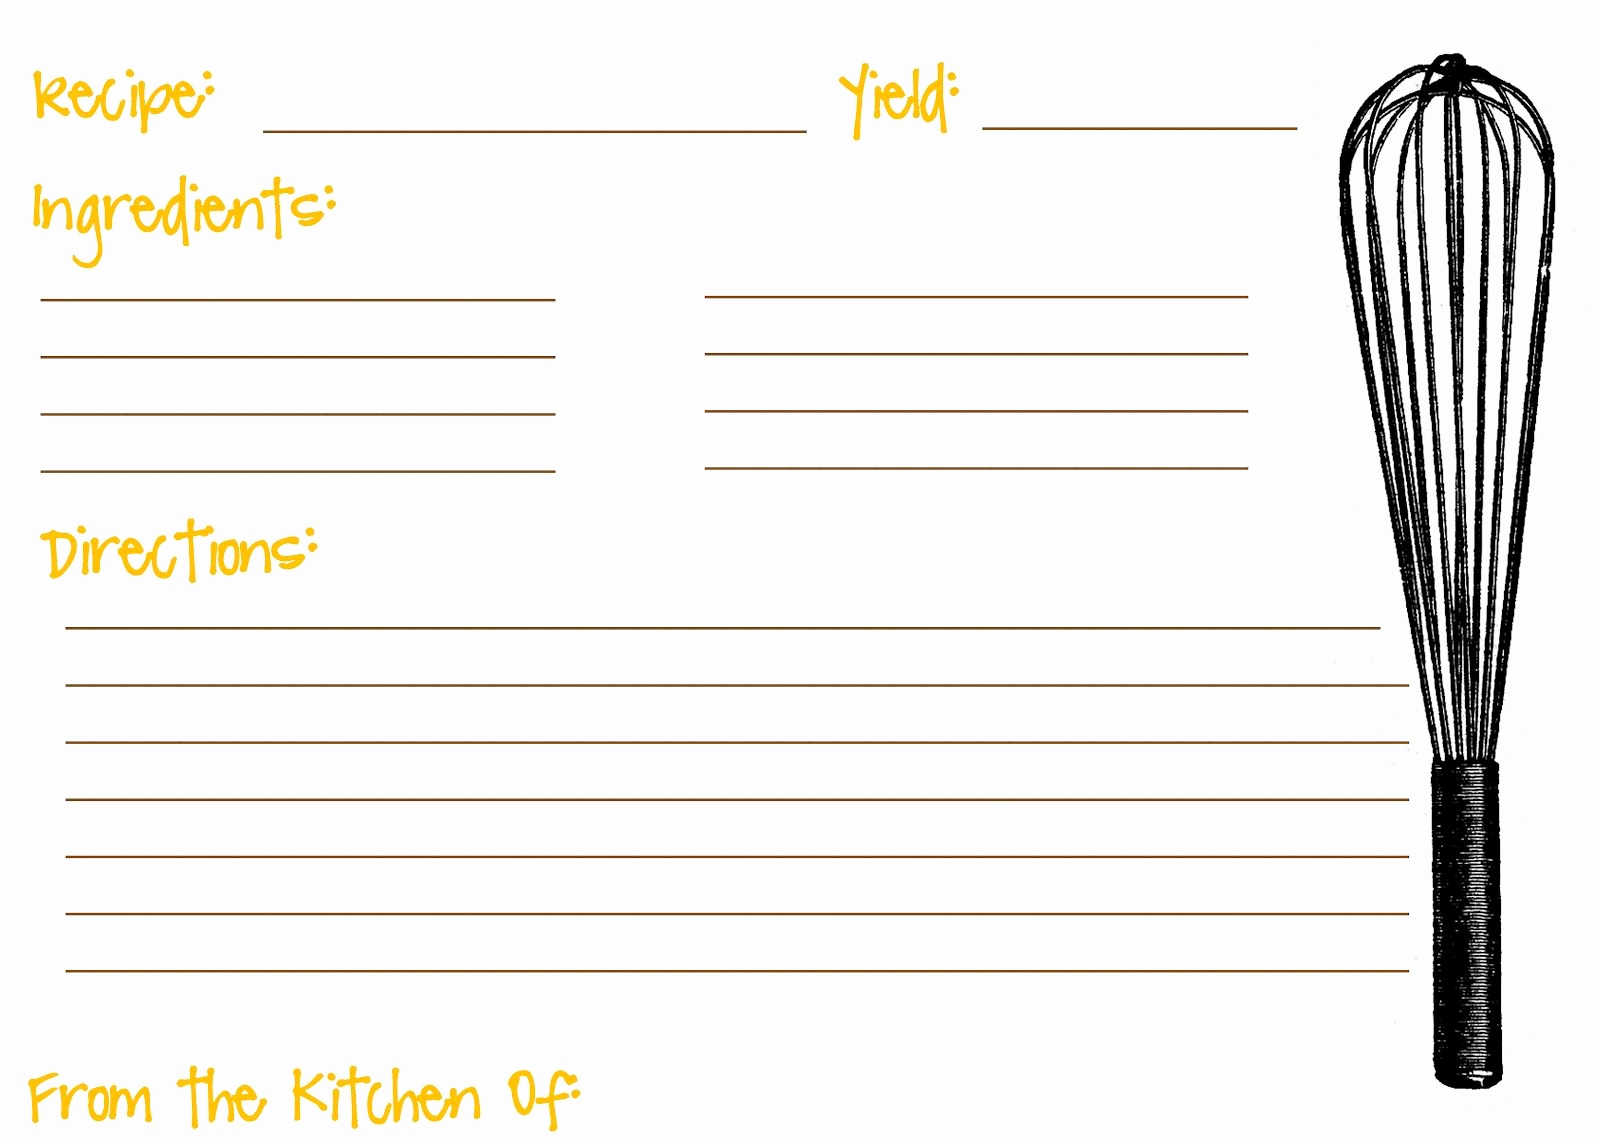 Microsoft Word Recipe Template Fresh Scooter Cakes Free Printable Recipe Cards